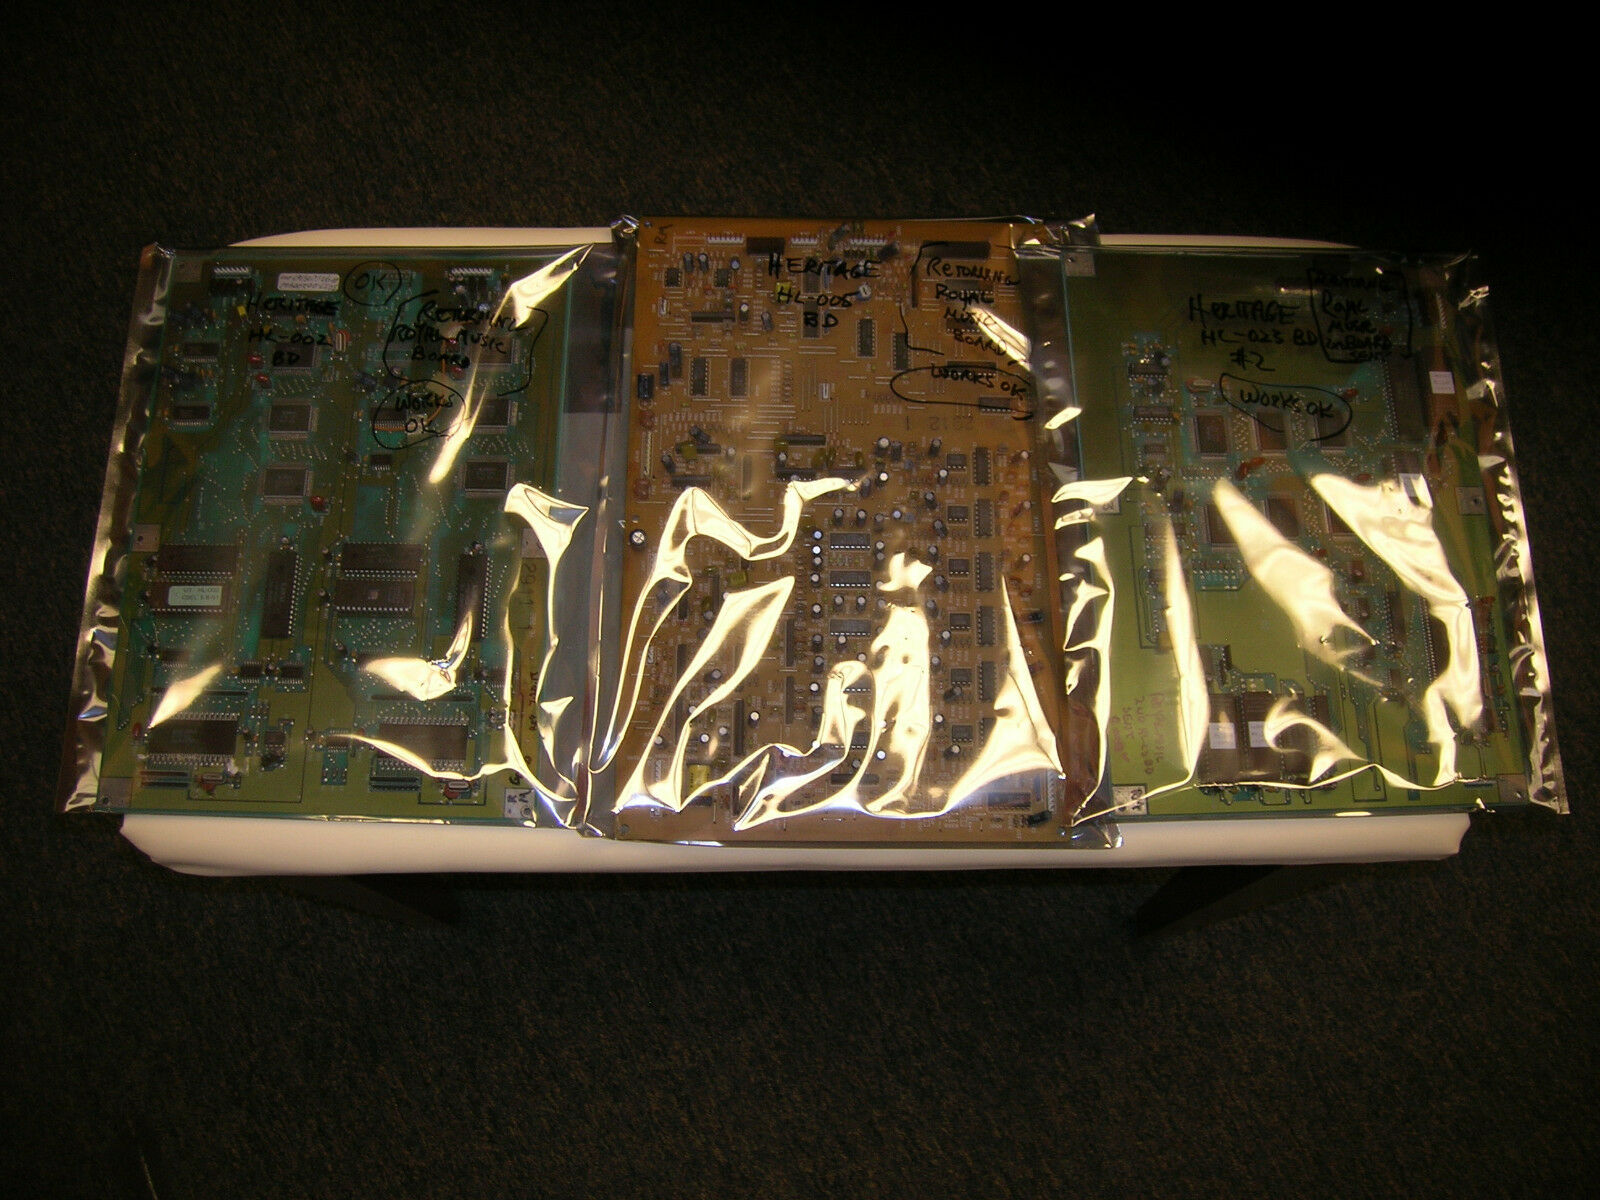 Lowrey PCB (Circuit Boards) for MX-2 and others ... see listing